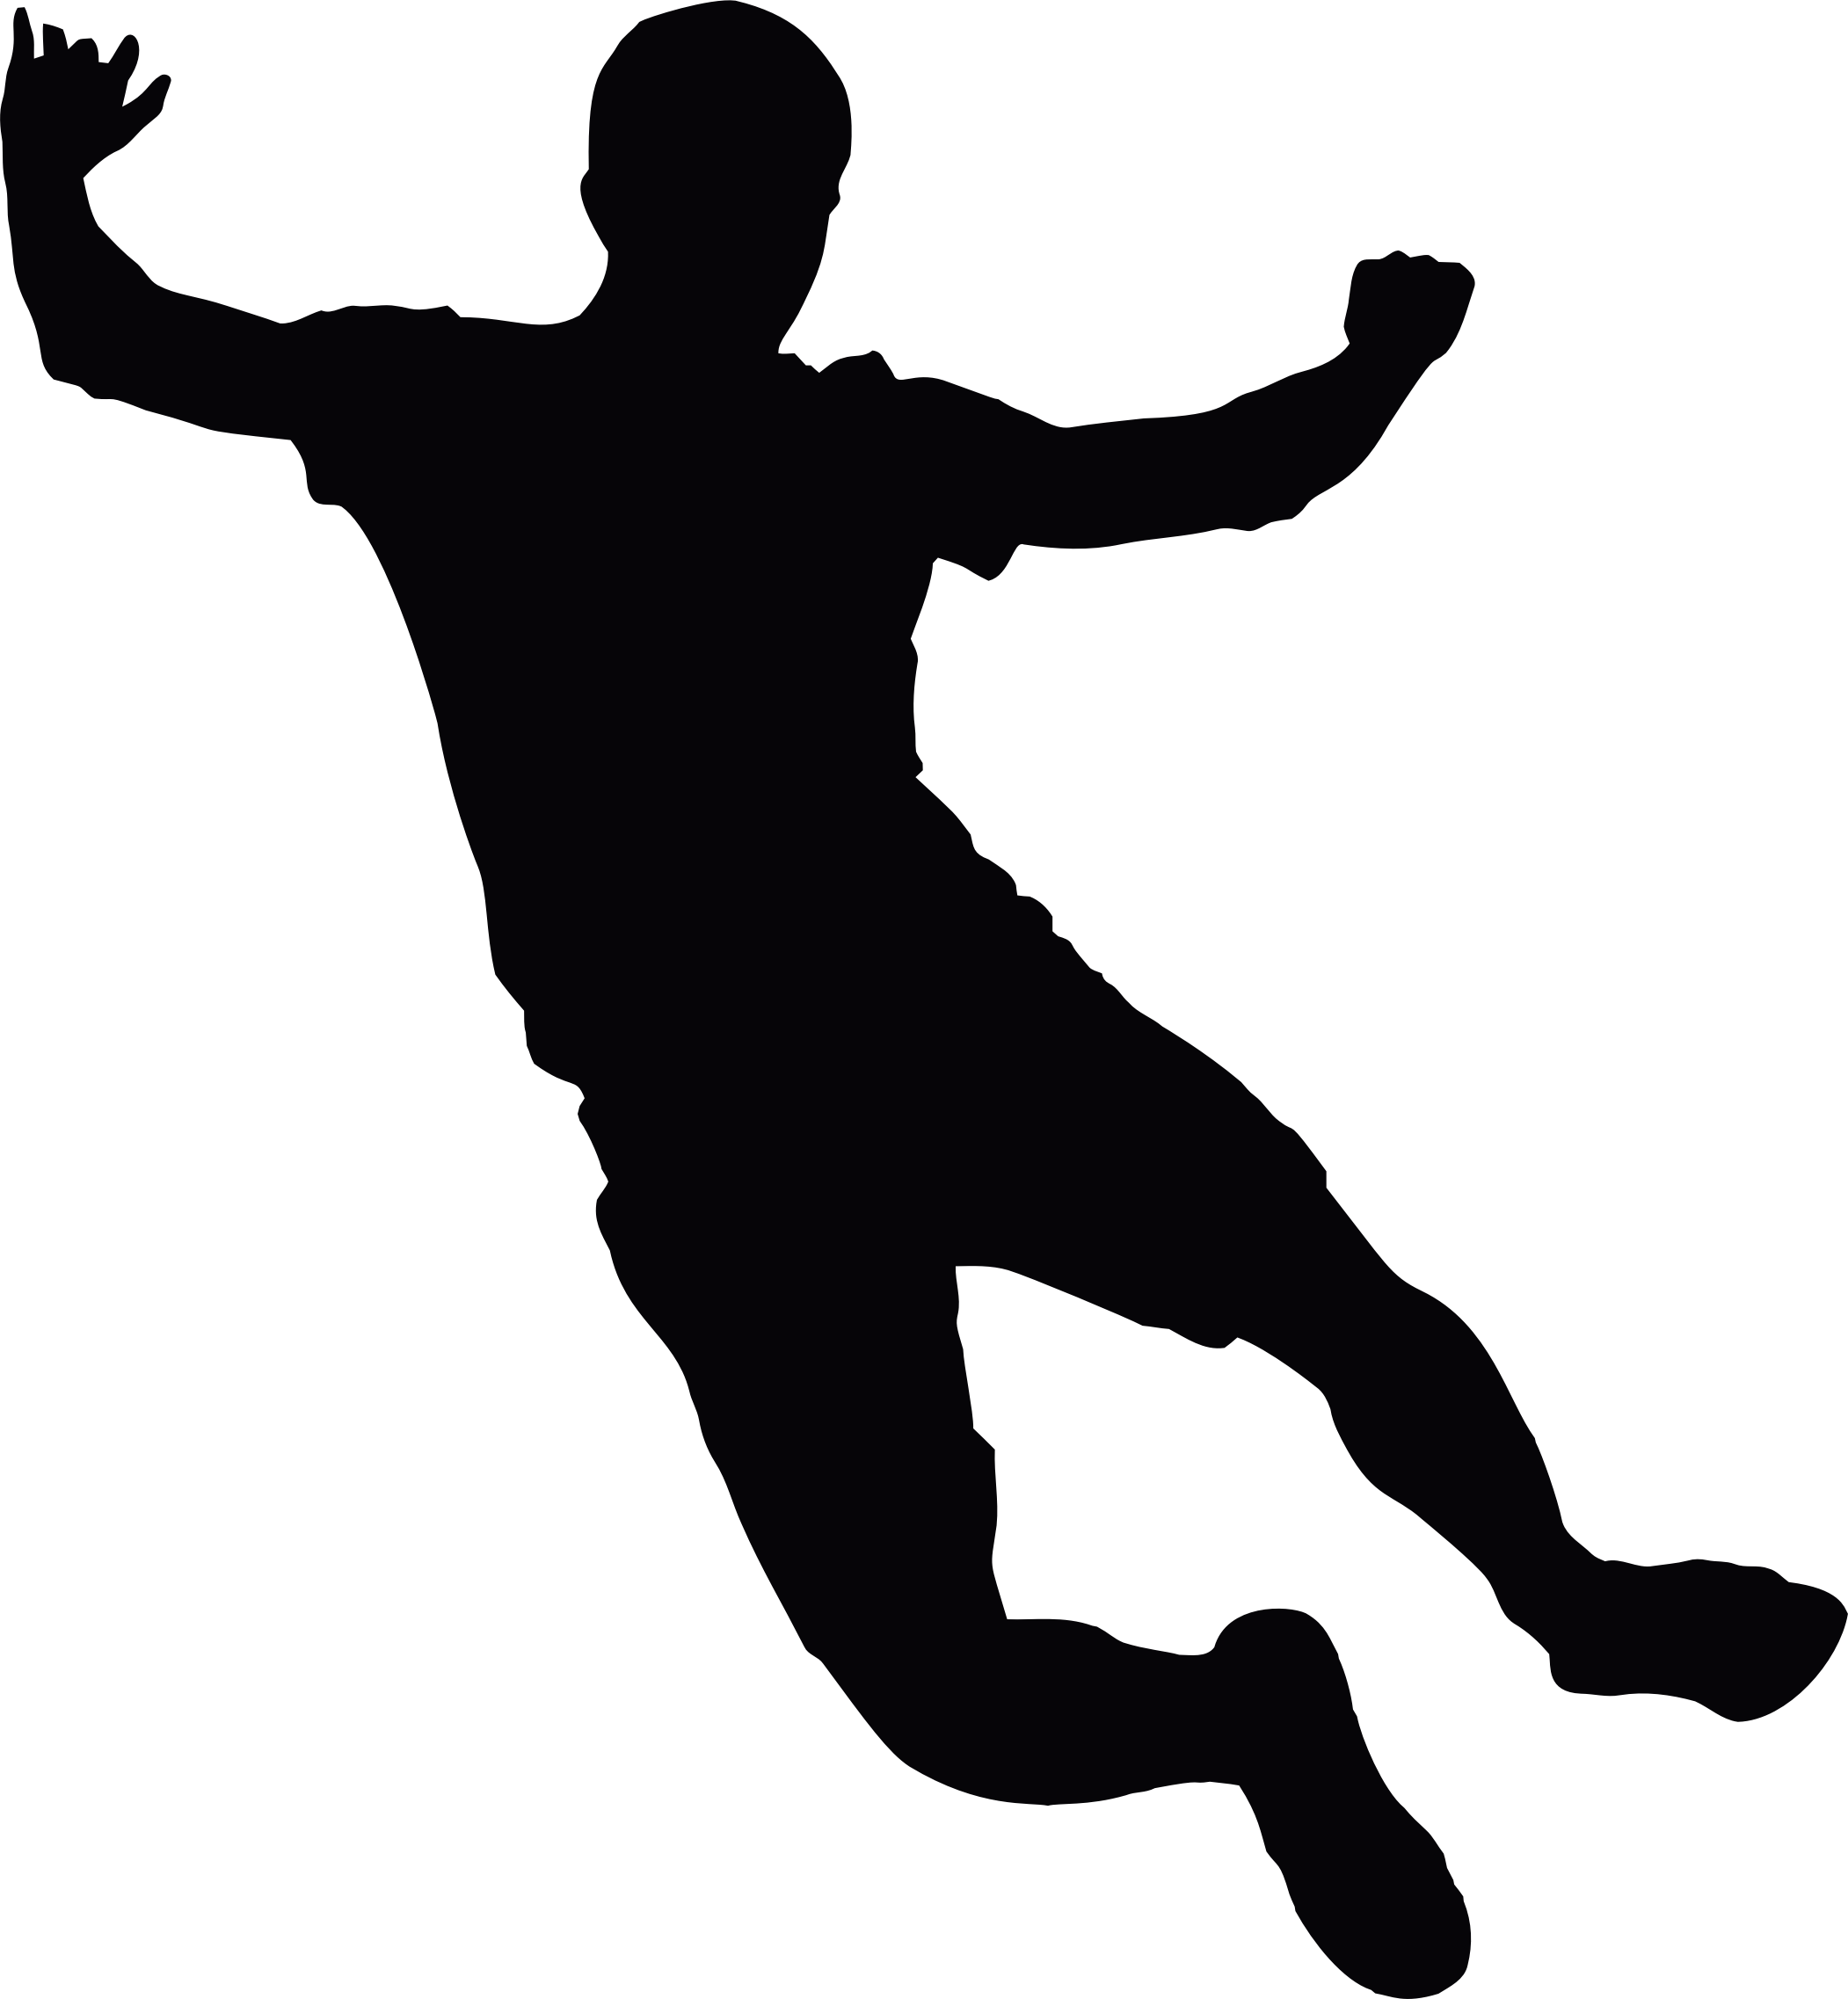 2 clipart person. Jumping man silhouette big